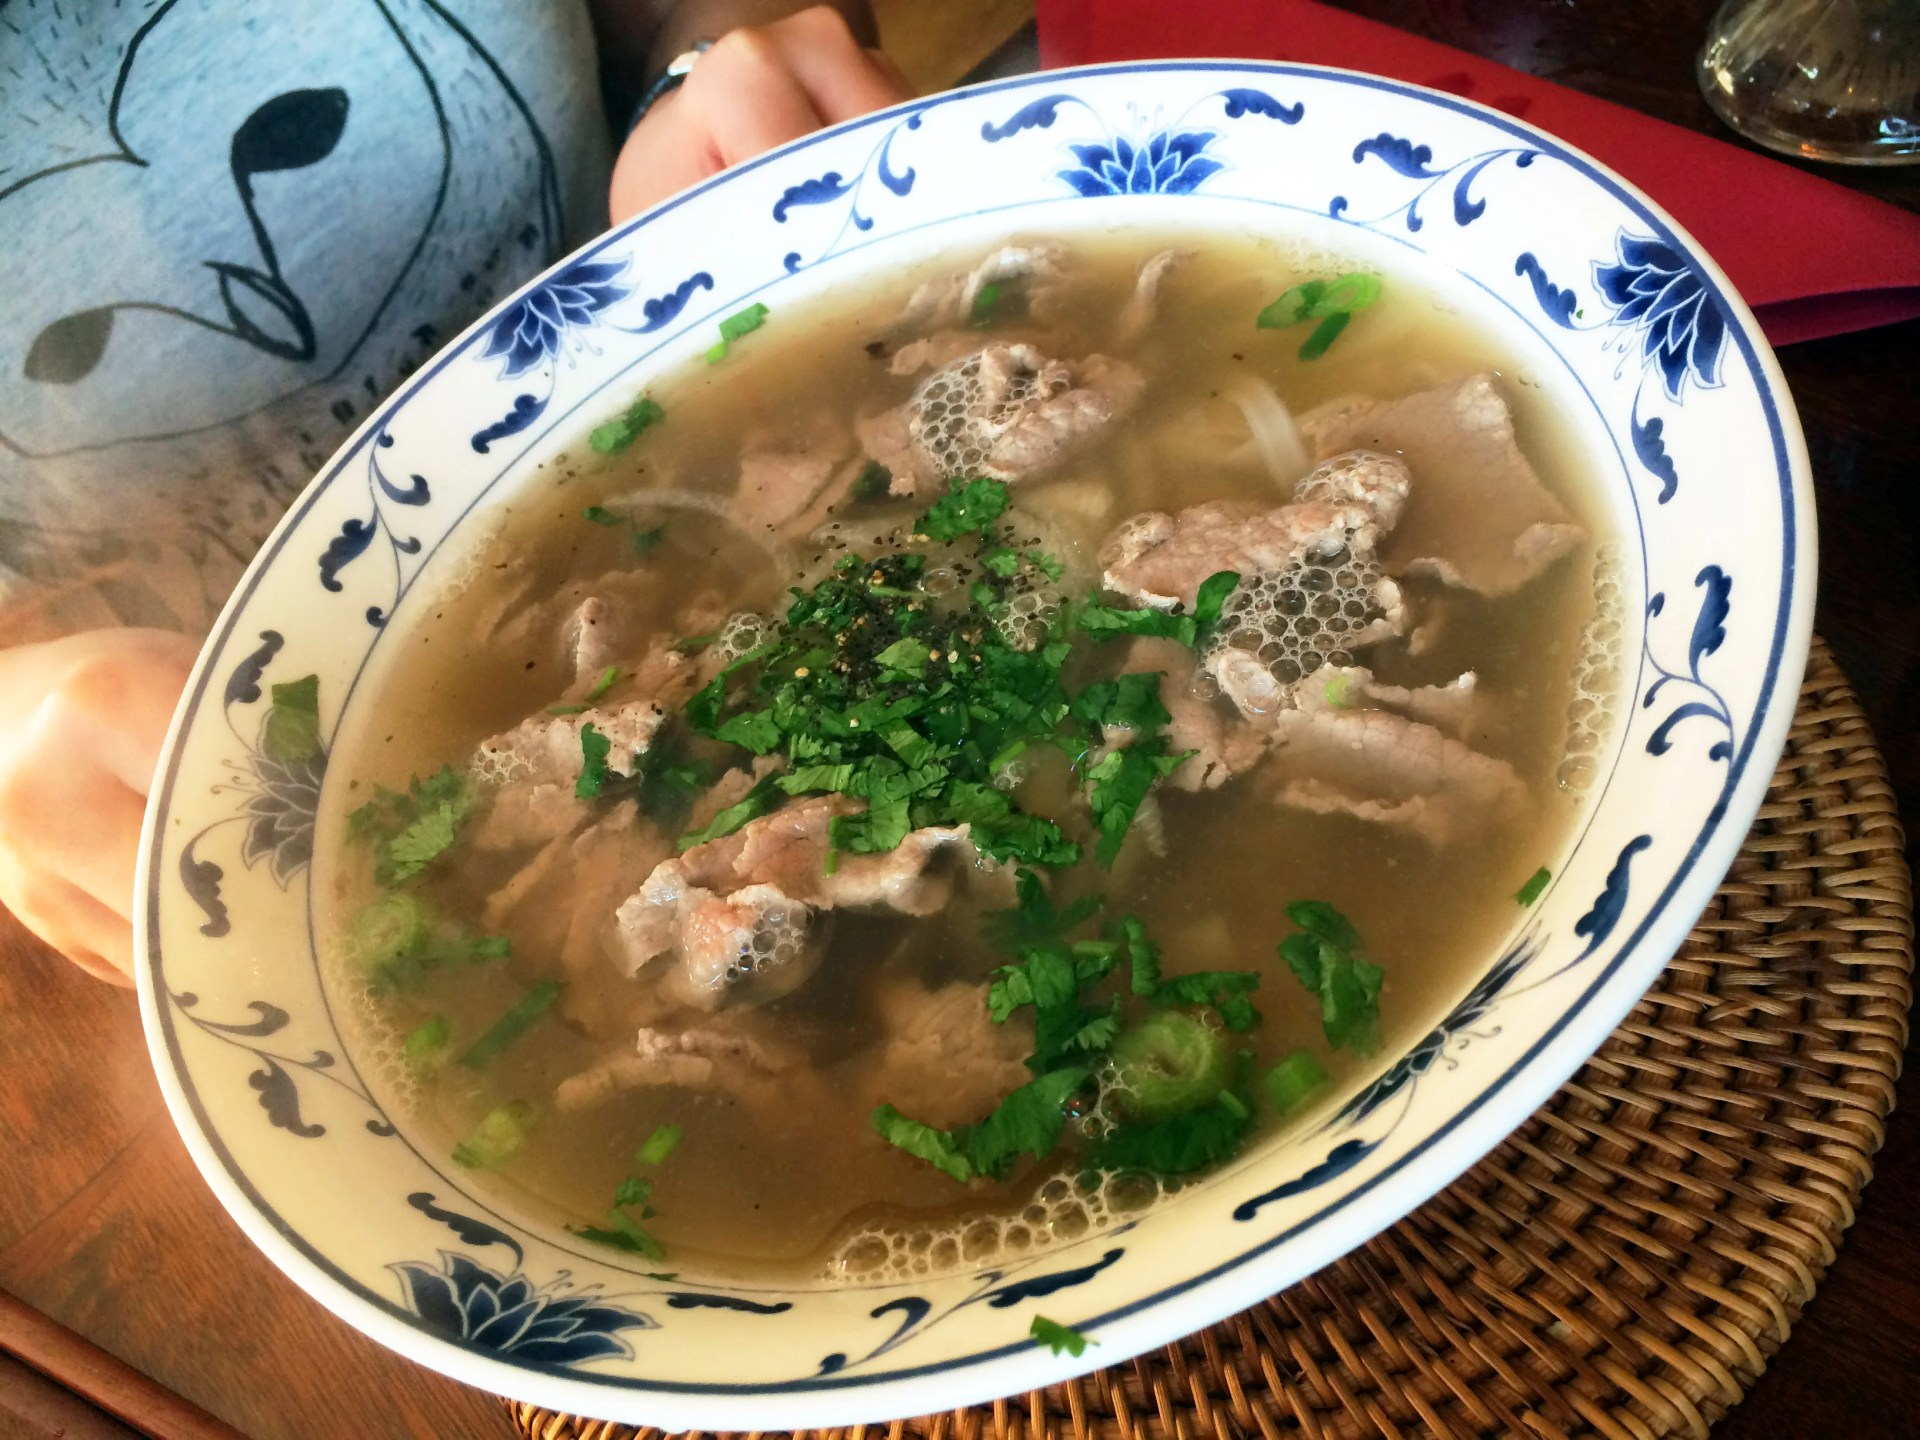 Flat rice noodles with well-done brisket & thinly slice rare beef (Pho bo)